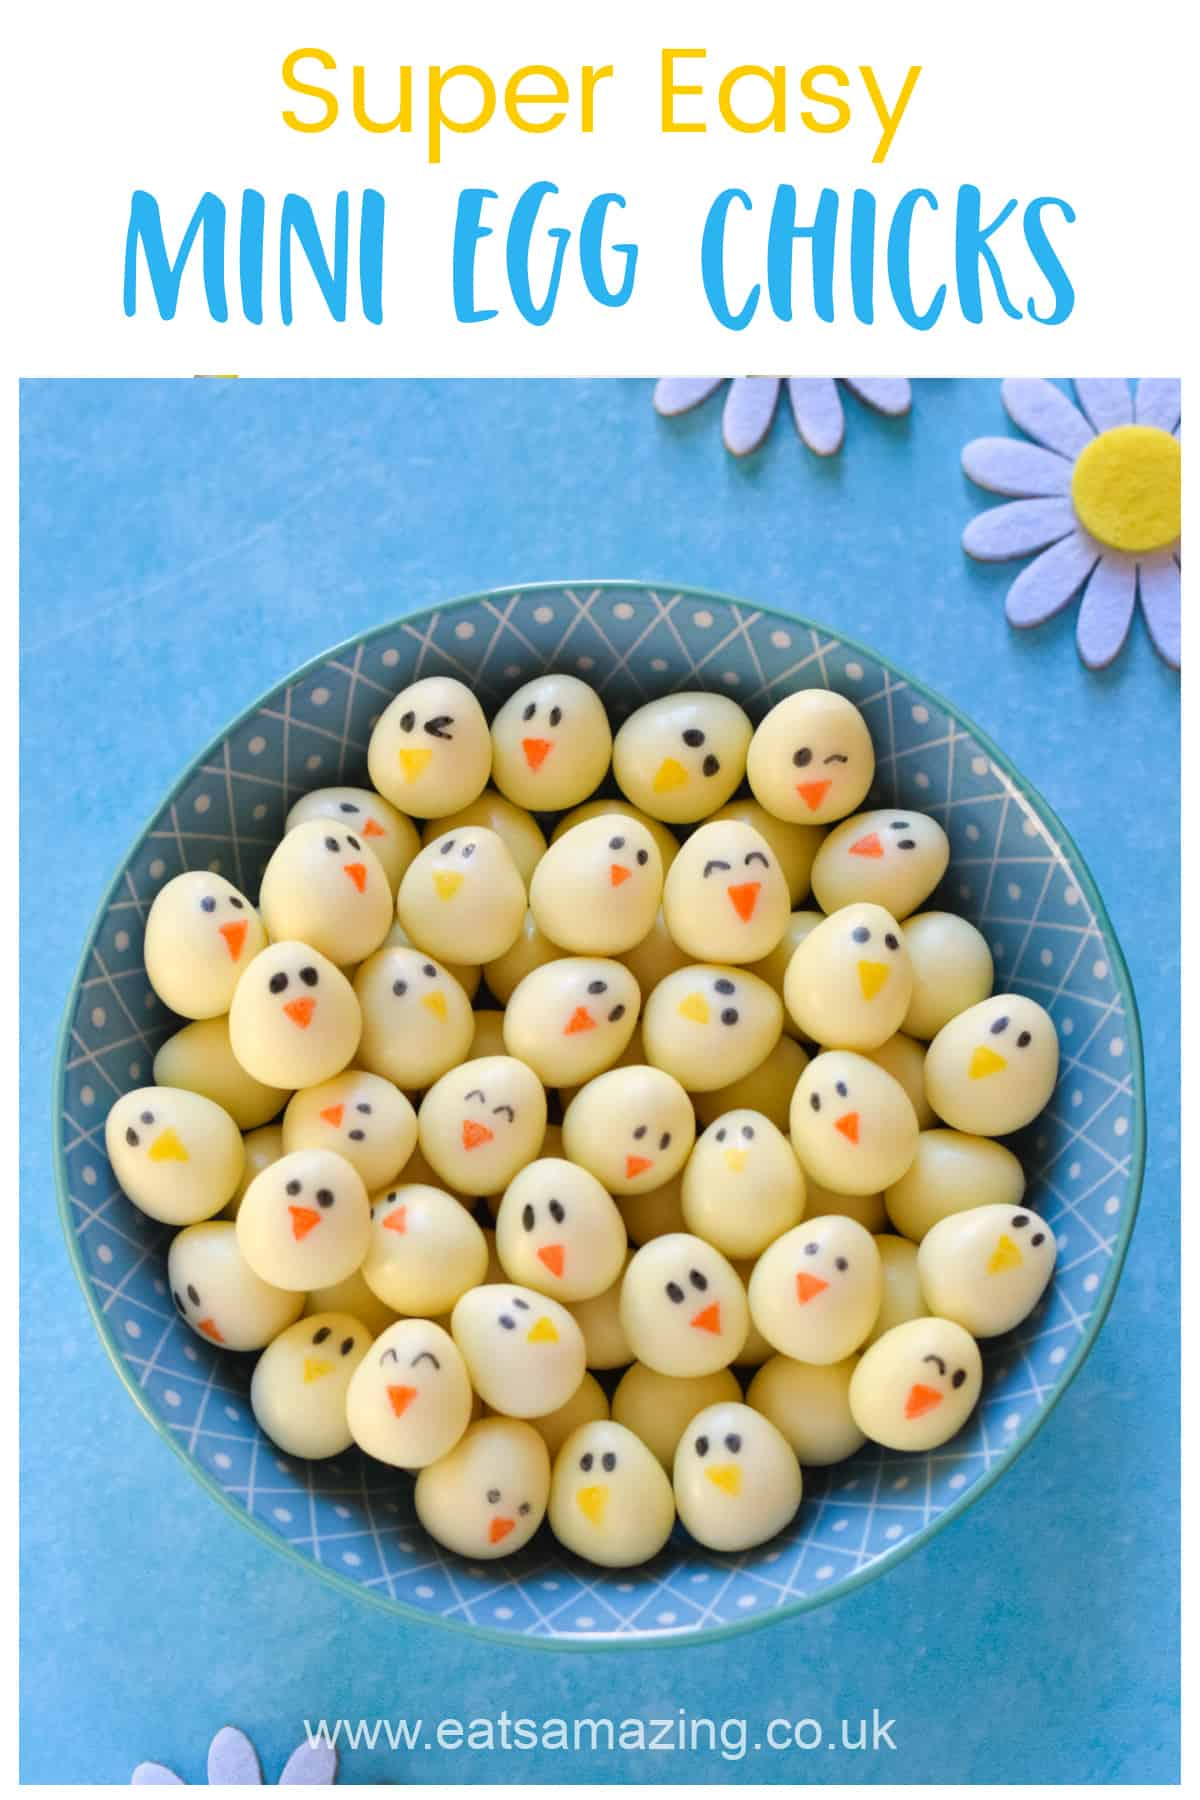 Super cute and easy Mini Egg Chicks - perfect for Easter gifts treats and Easter baking